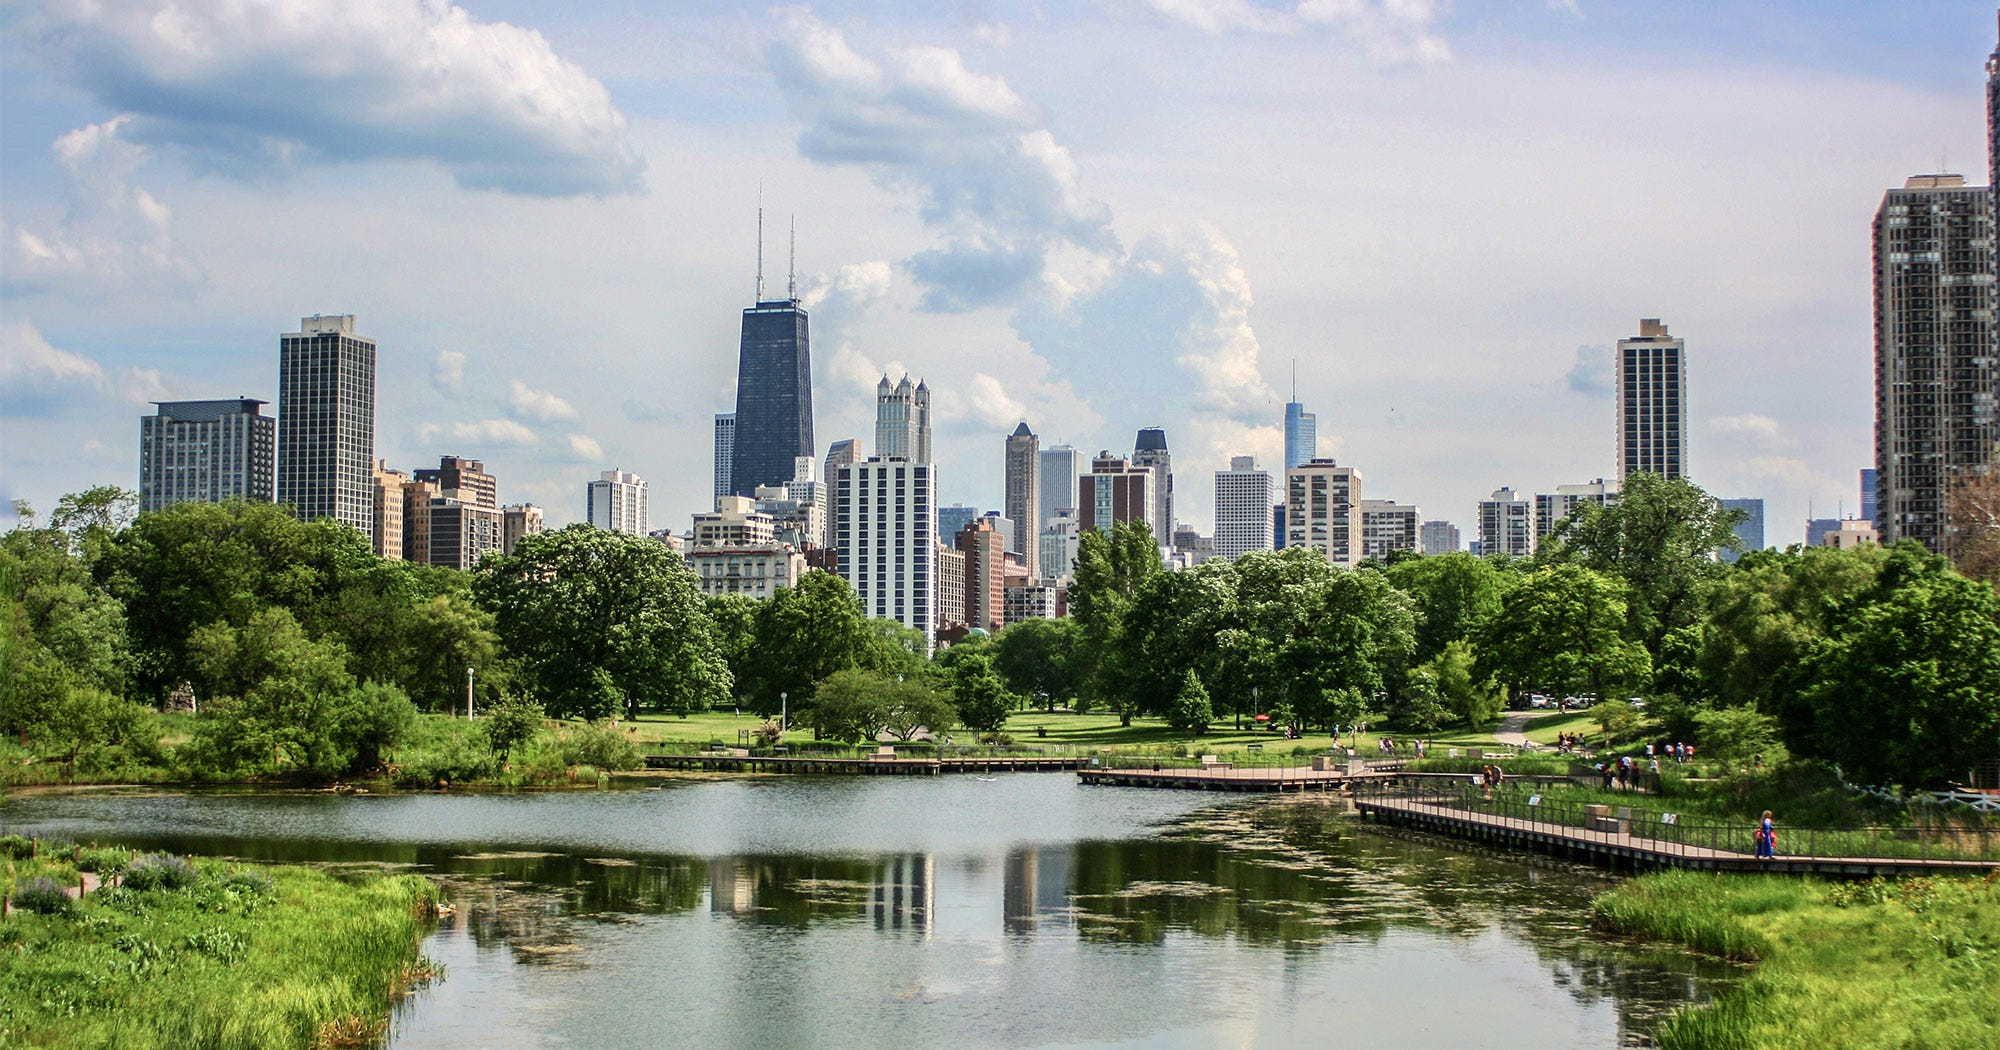 Need Plans For This Weekend? Here's What To Do In Chicago